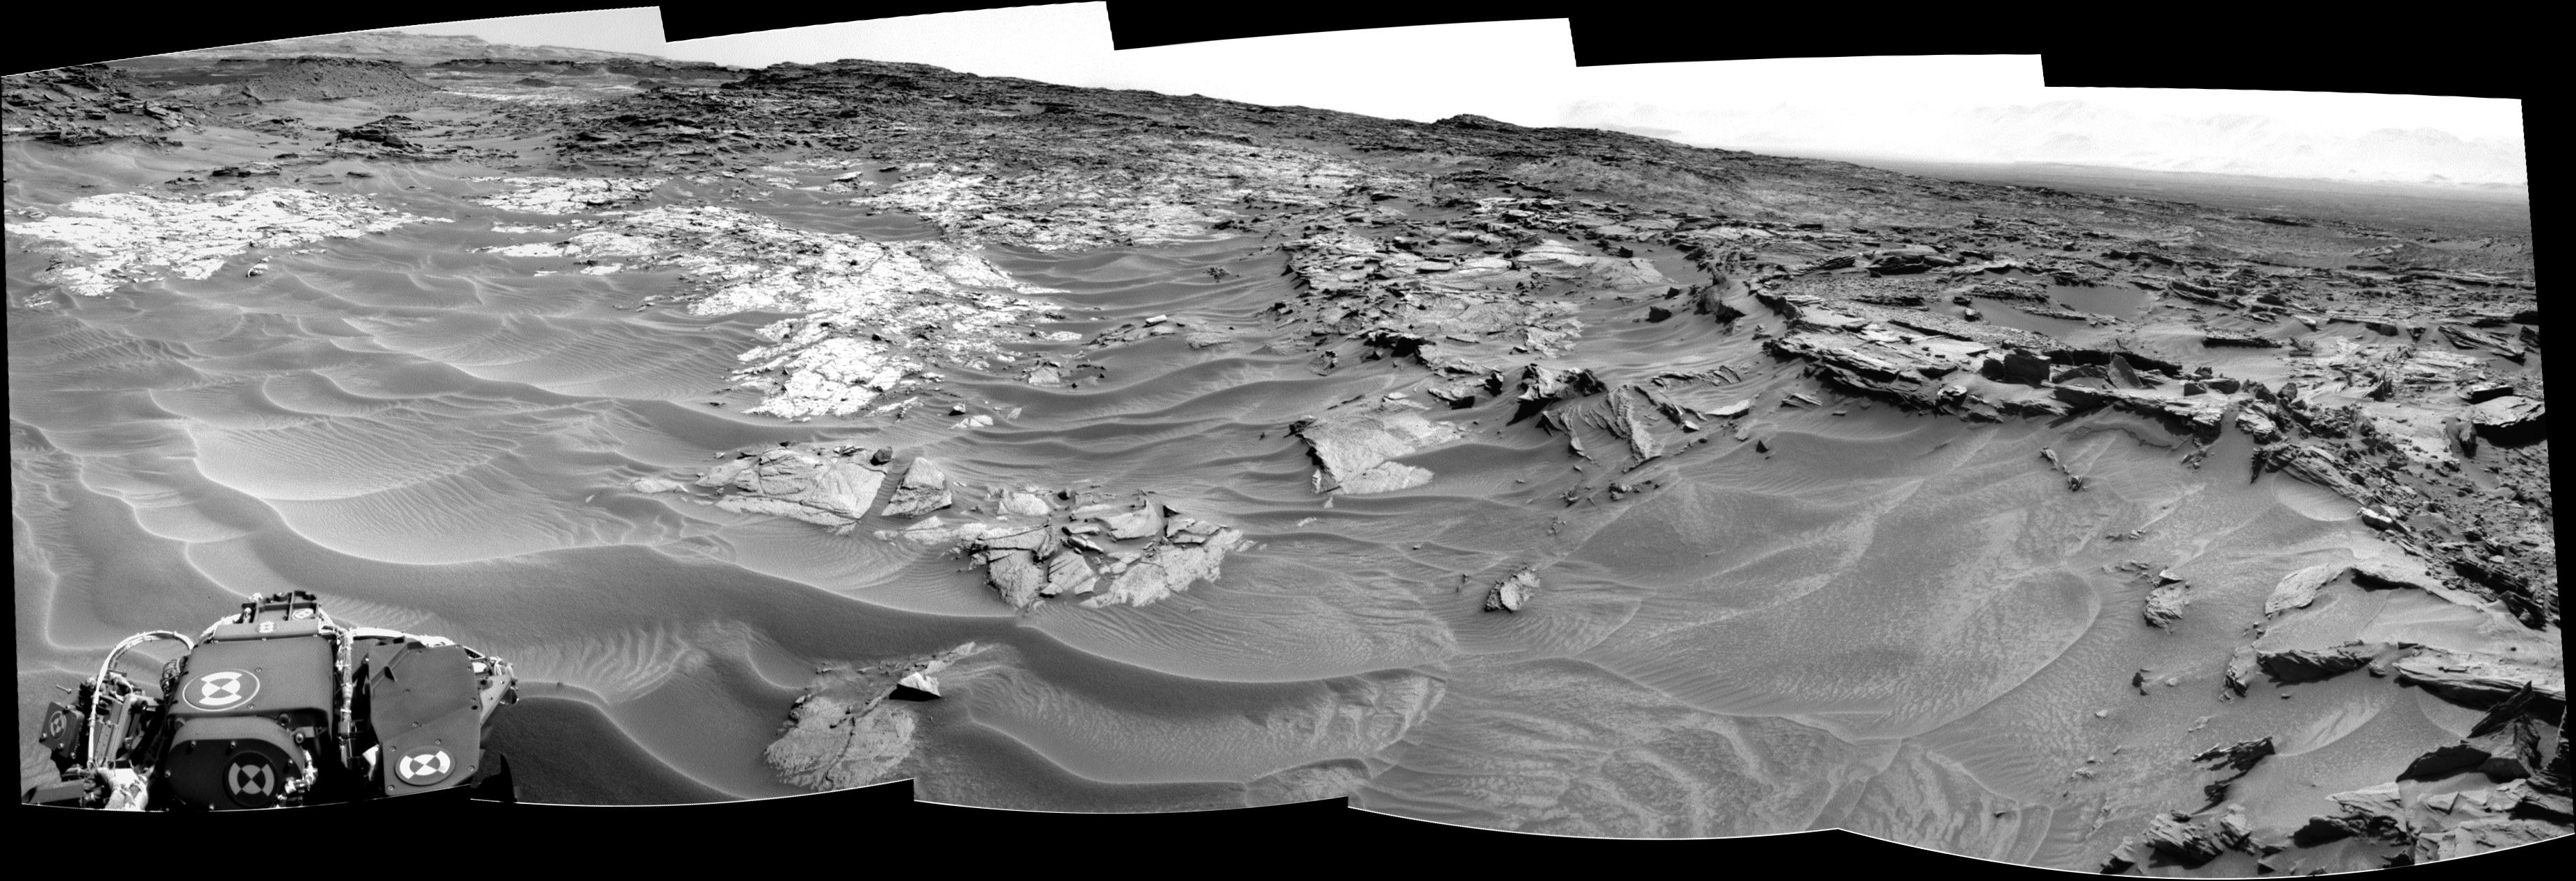 panoramic curiosity rover view b&w 1 - sol 1352 - was life on mars